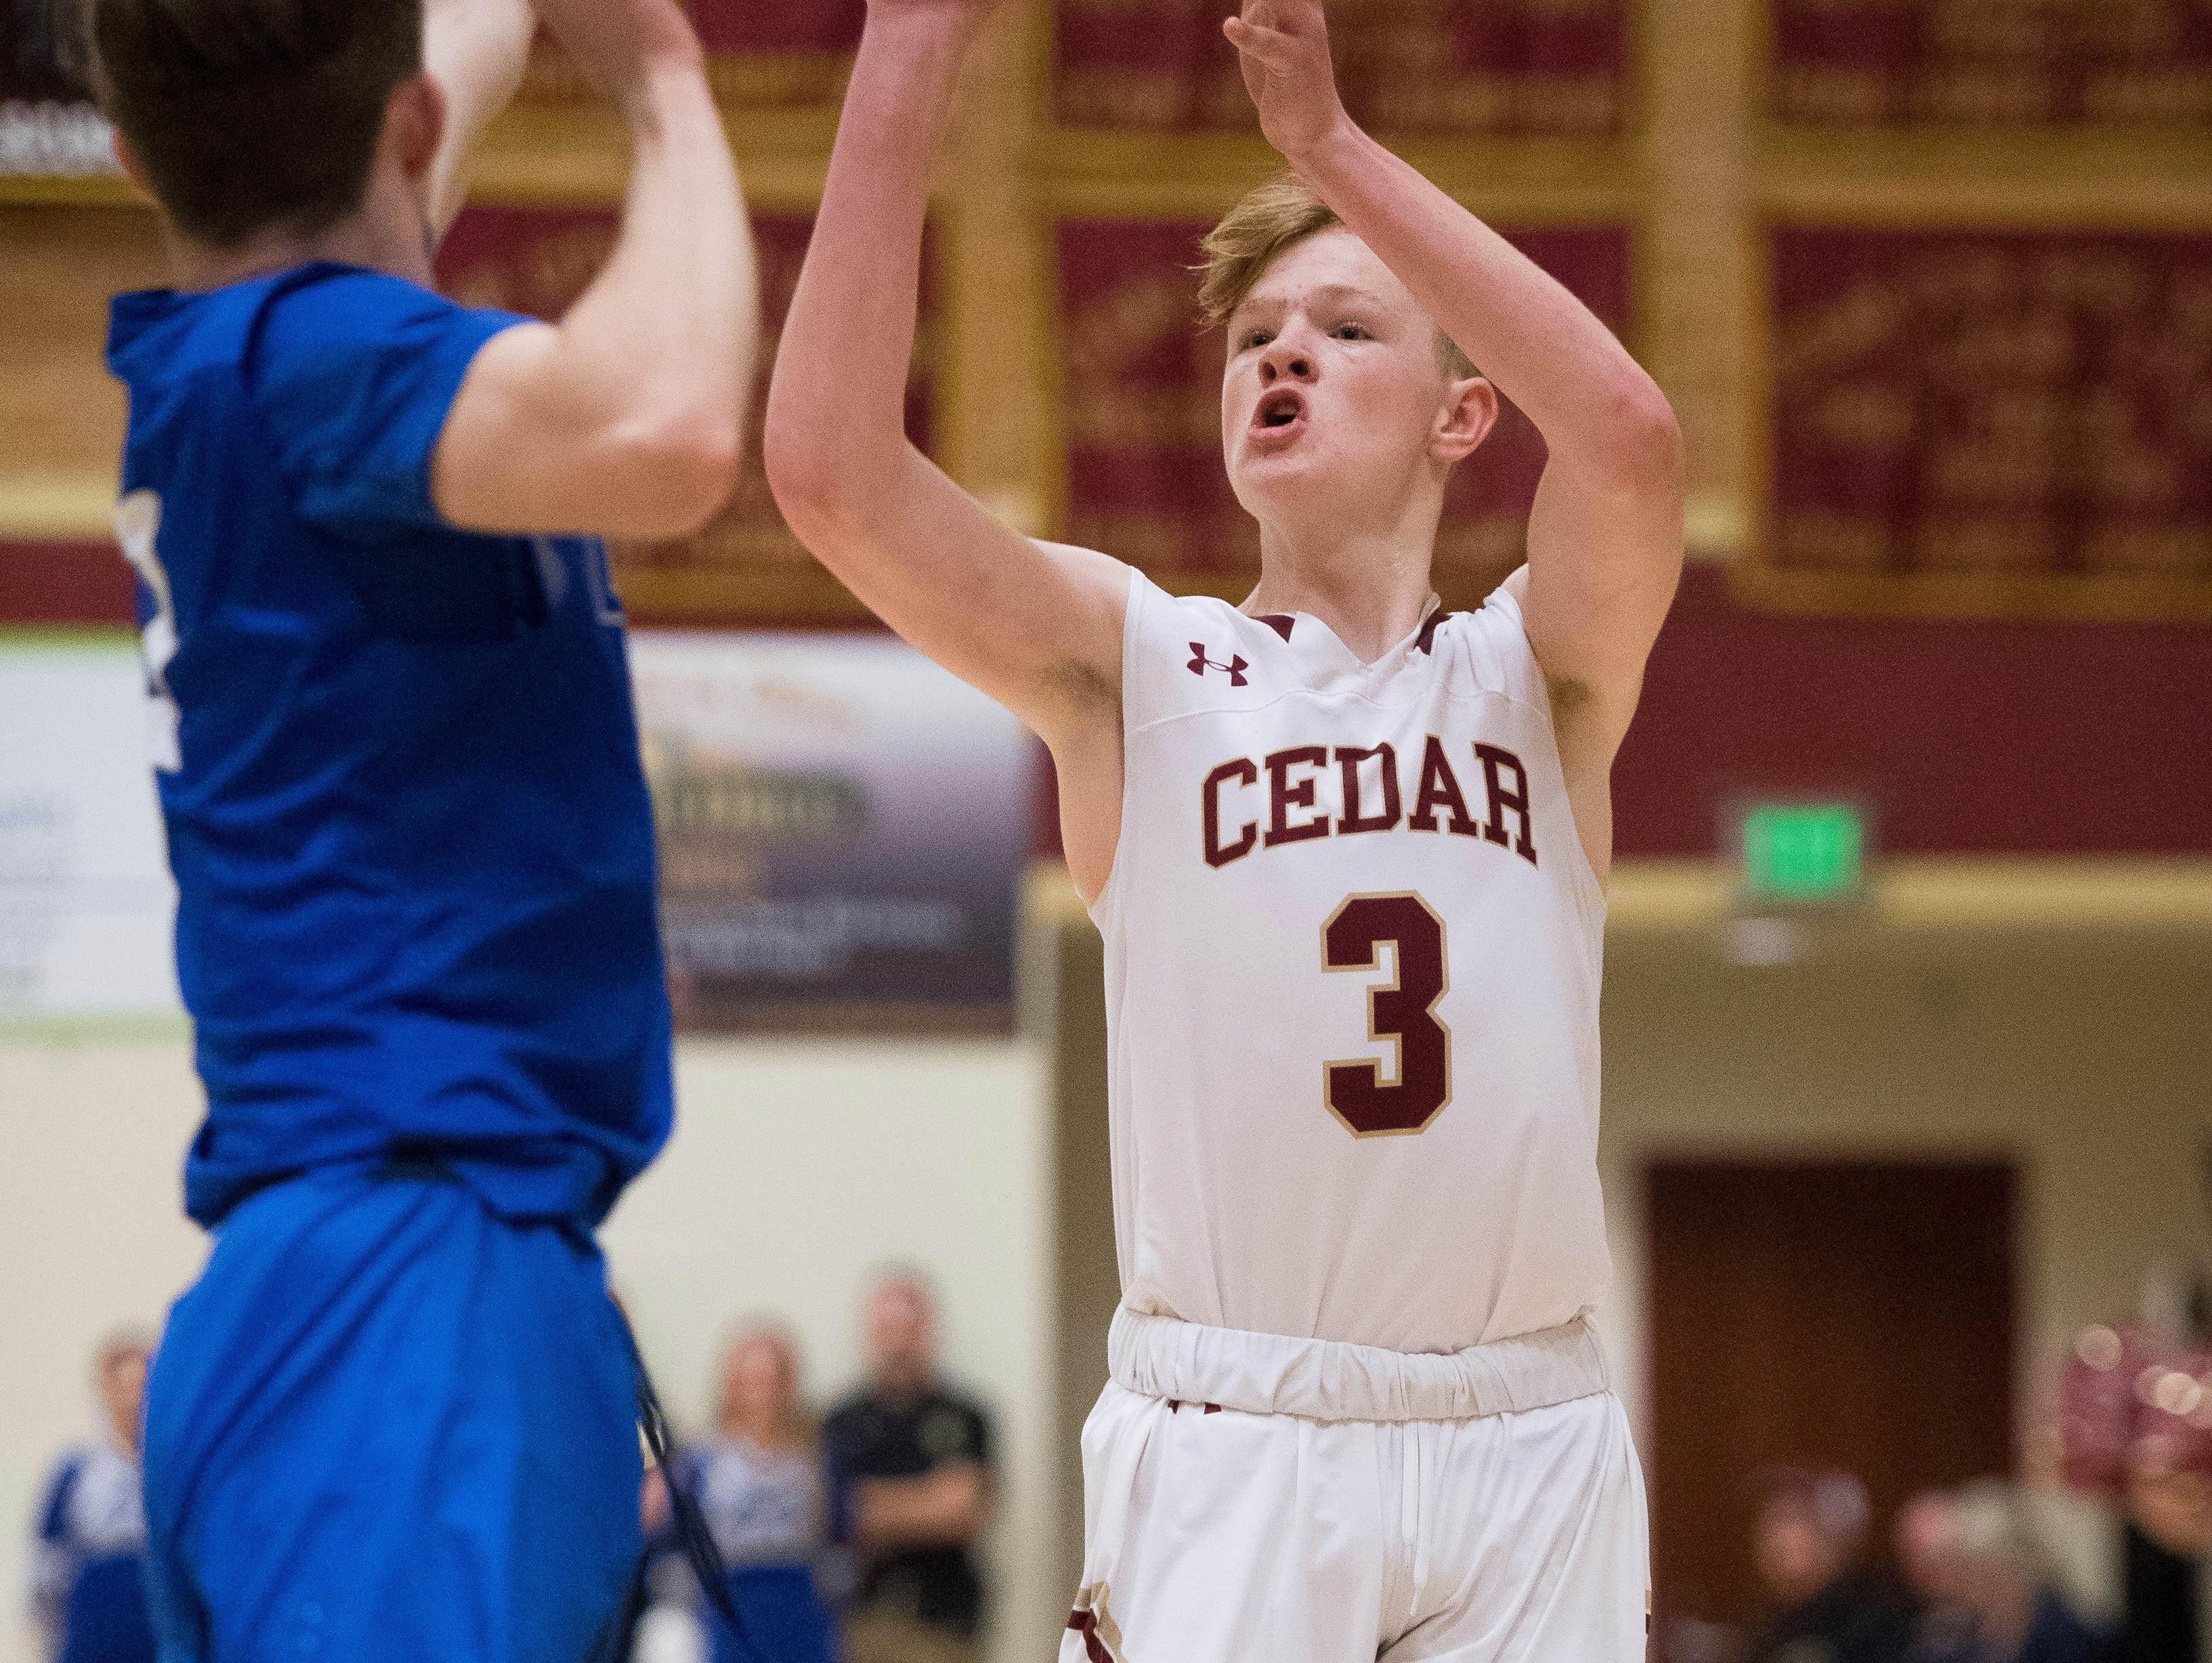 Cedar High School sophomore Gaige Savage (3) takes a shot against Dixie at CHS Wednesday, December 19, 2018. Trading the lead all game, Dixie won, 49-45.